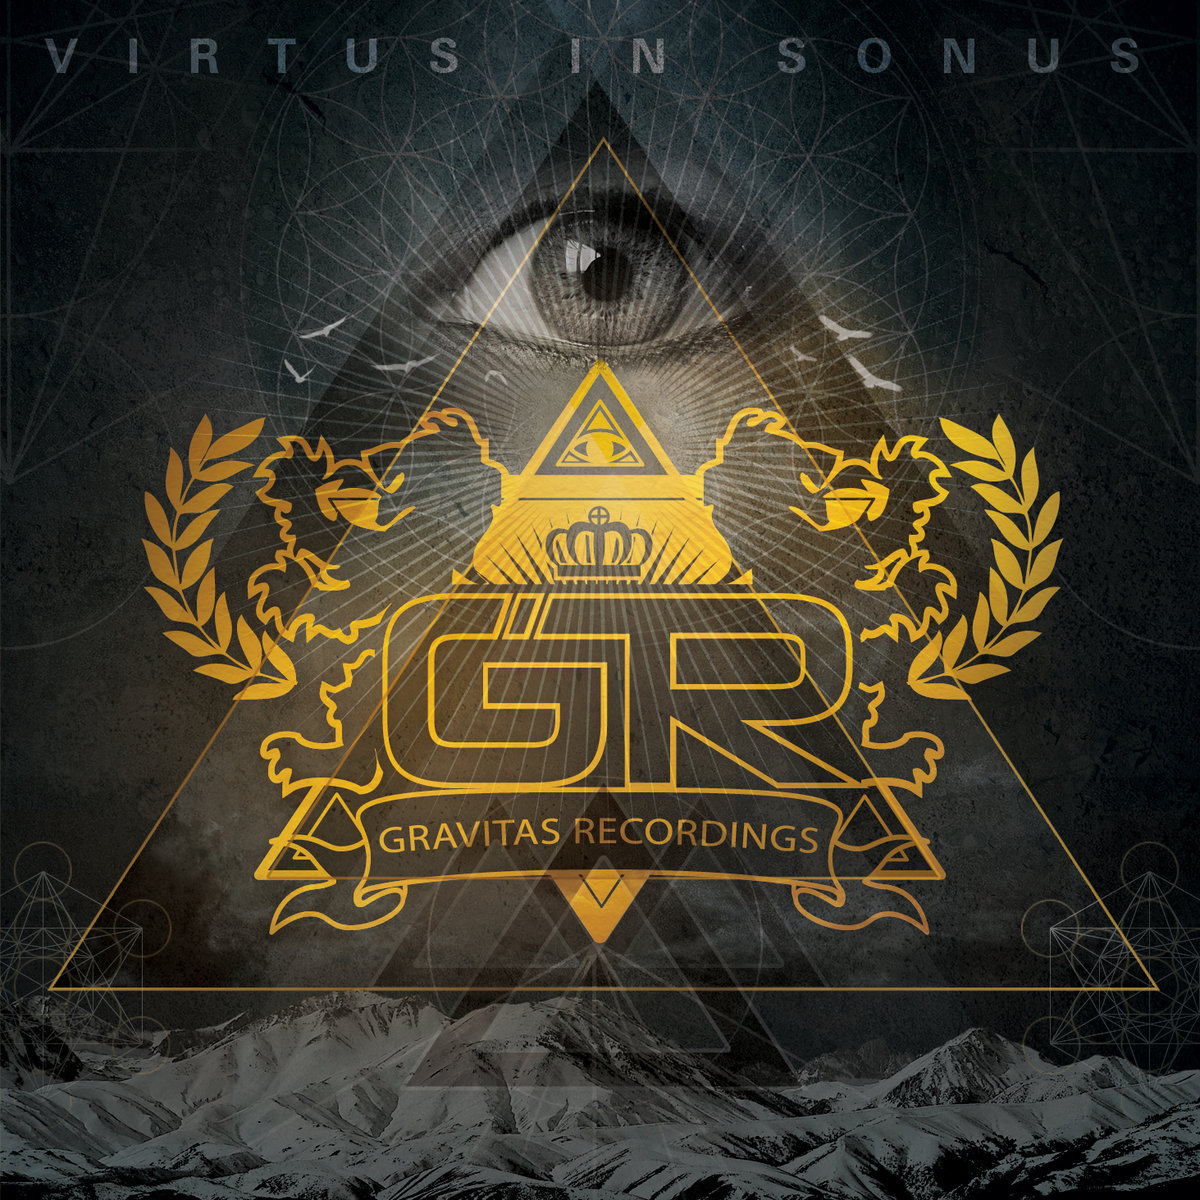 One4All - Theory of Relativity @ 'Virtus In Sonus' album (blunt instrument, boombaptist)